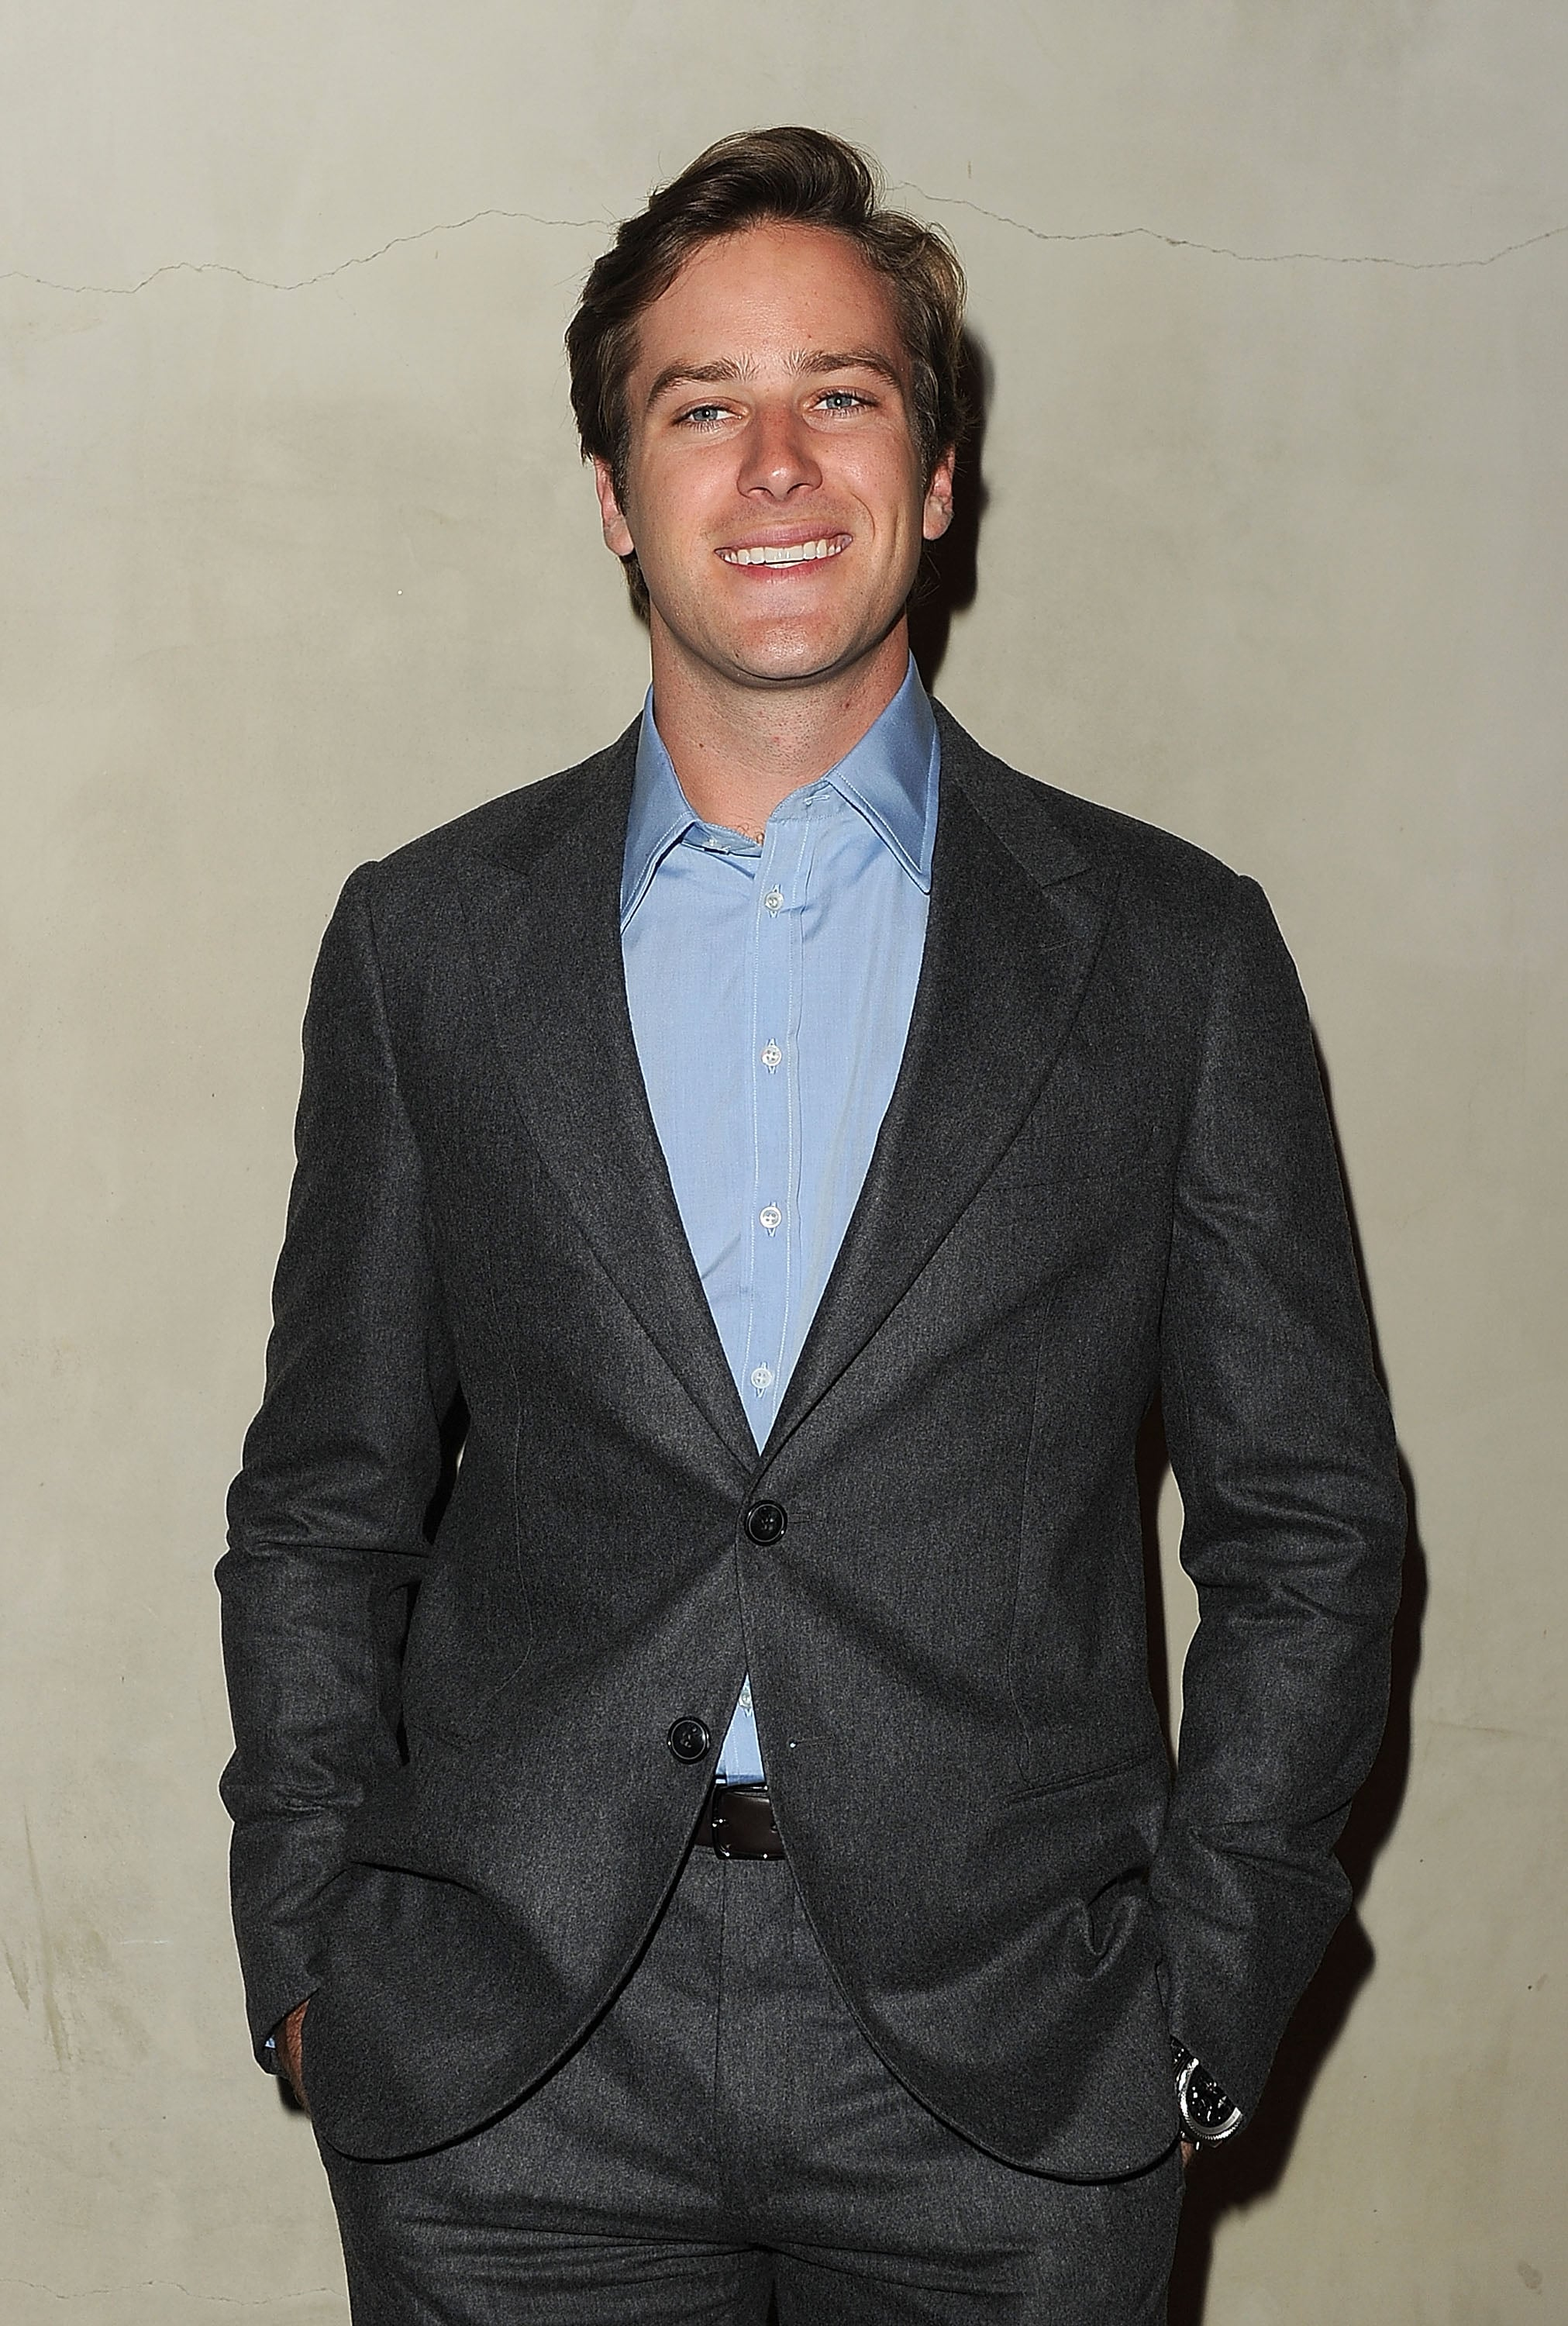 Armie Hammer rubbed shoulders with Hollywood's A-list at a private dinner.